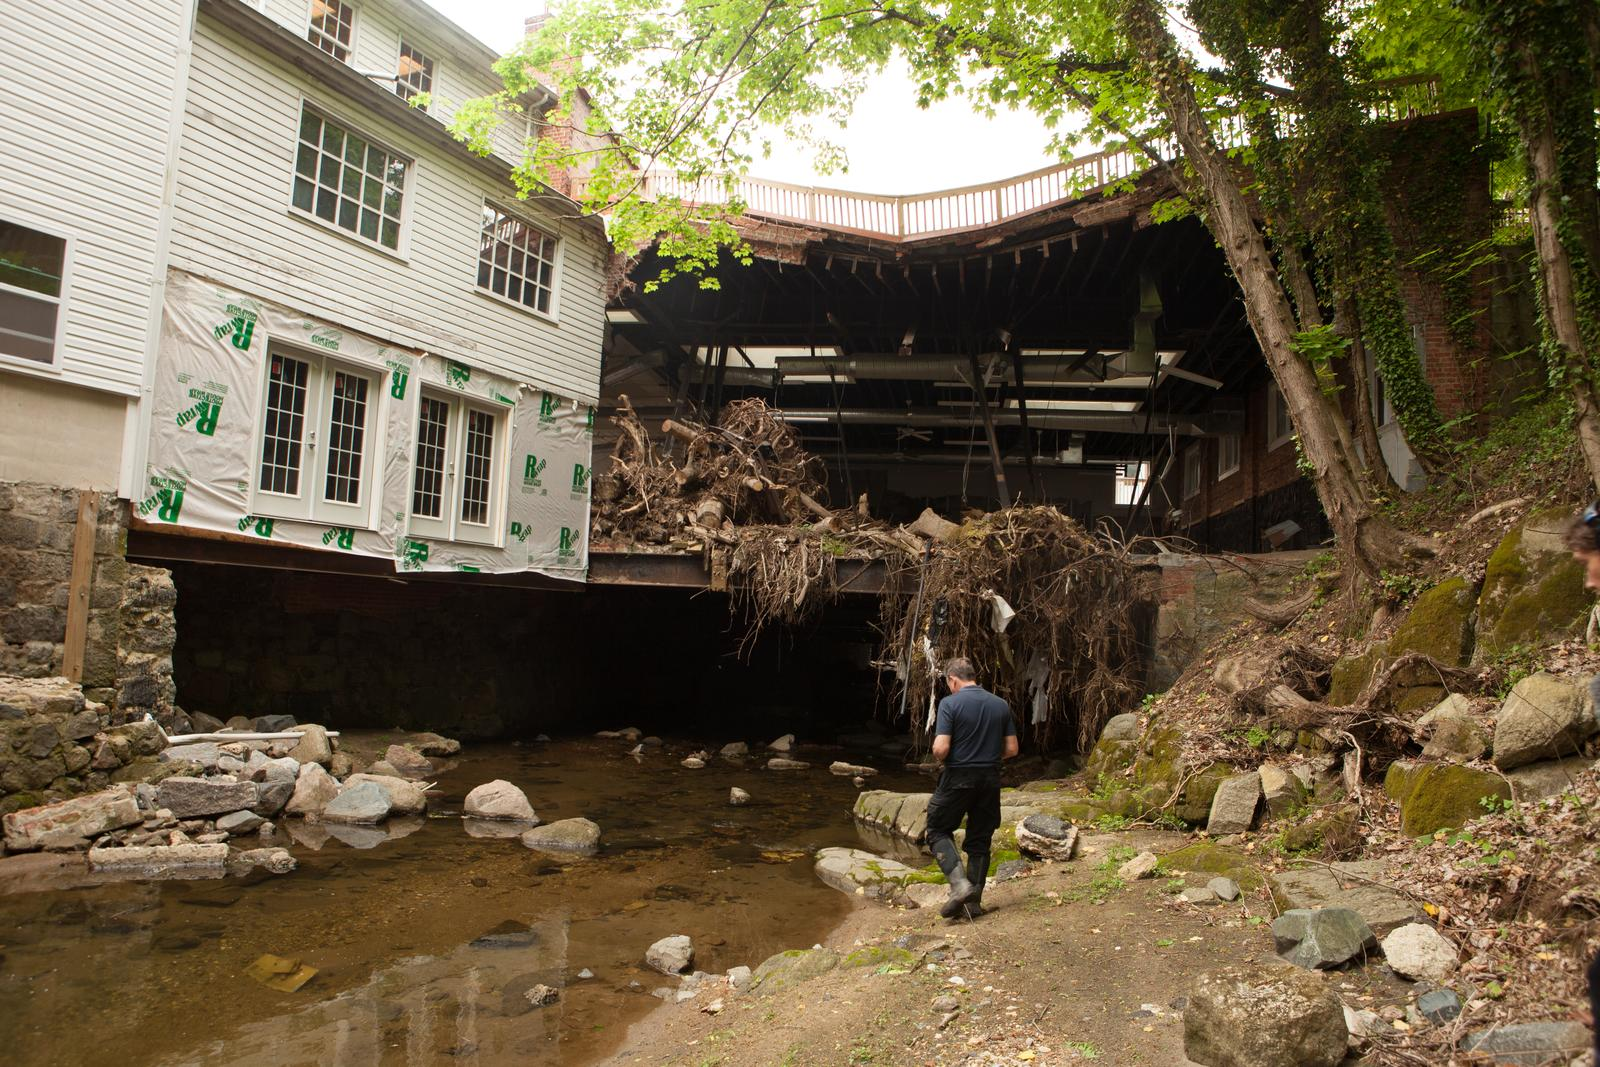 After The Water: Flash Floods Pose Existential Threat To Towns Across U.S. : NPR